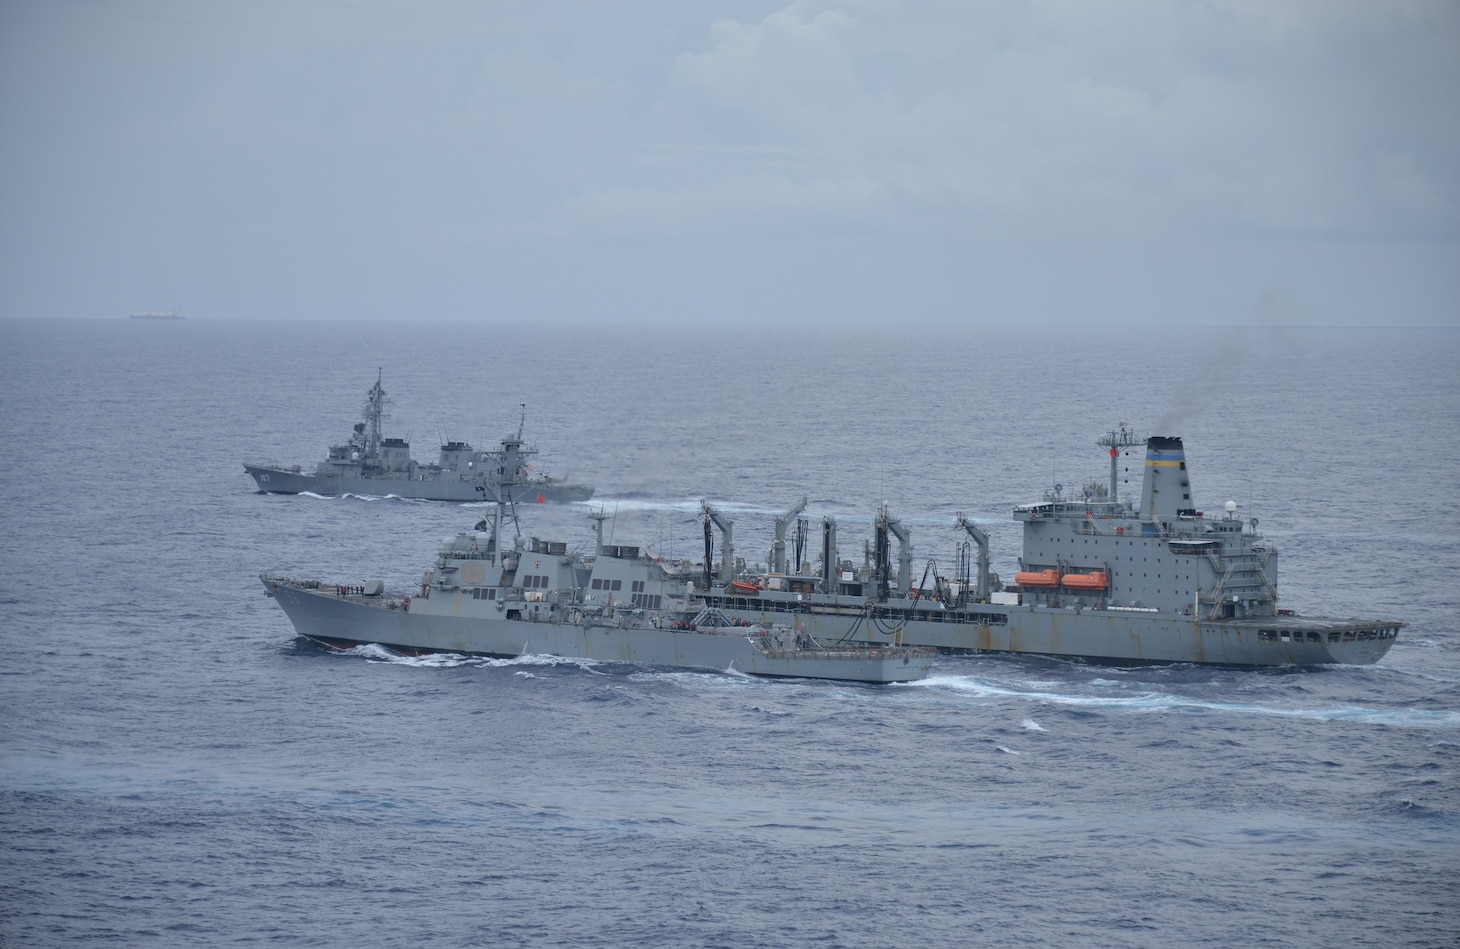 SOUTH CHINA SEA (Oct. 13, 2020) – Arleigh Burke-class guided-missile destroyer USS John S. McCain (DDG 56) joined Japan Maritime Self-Defense Force (JMSDF) Escort Flotilla 2 during integrated operations in the South China Sea beginning Oct. 12.